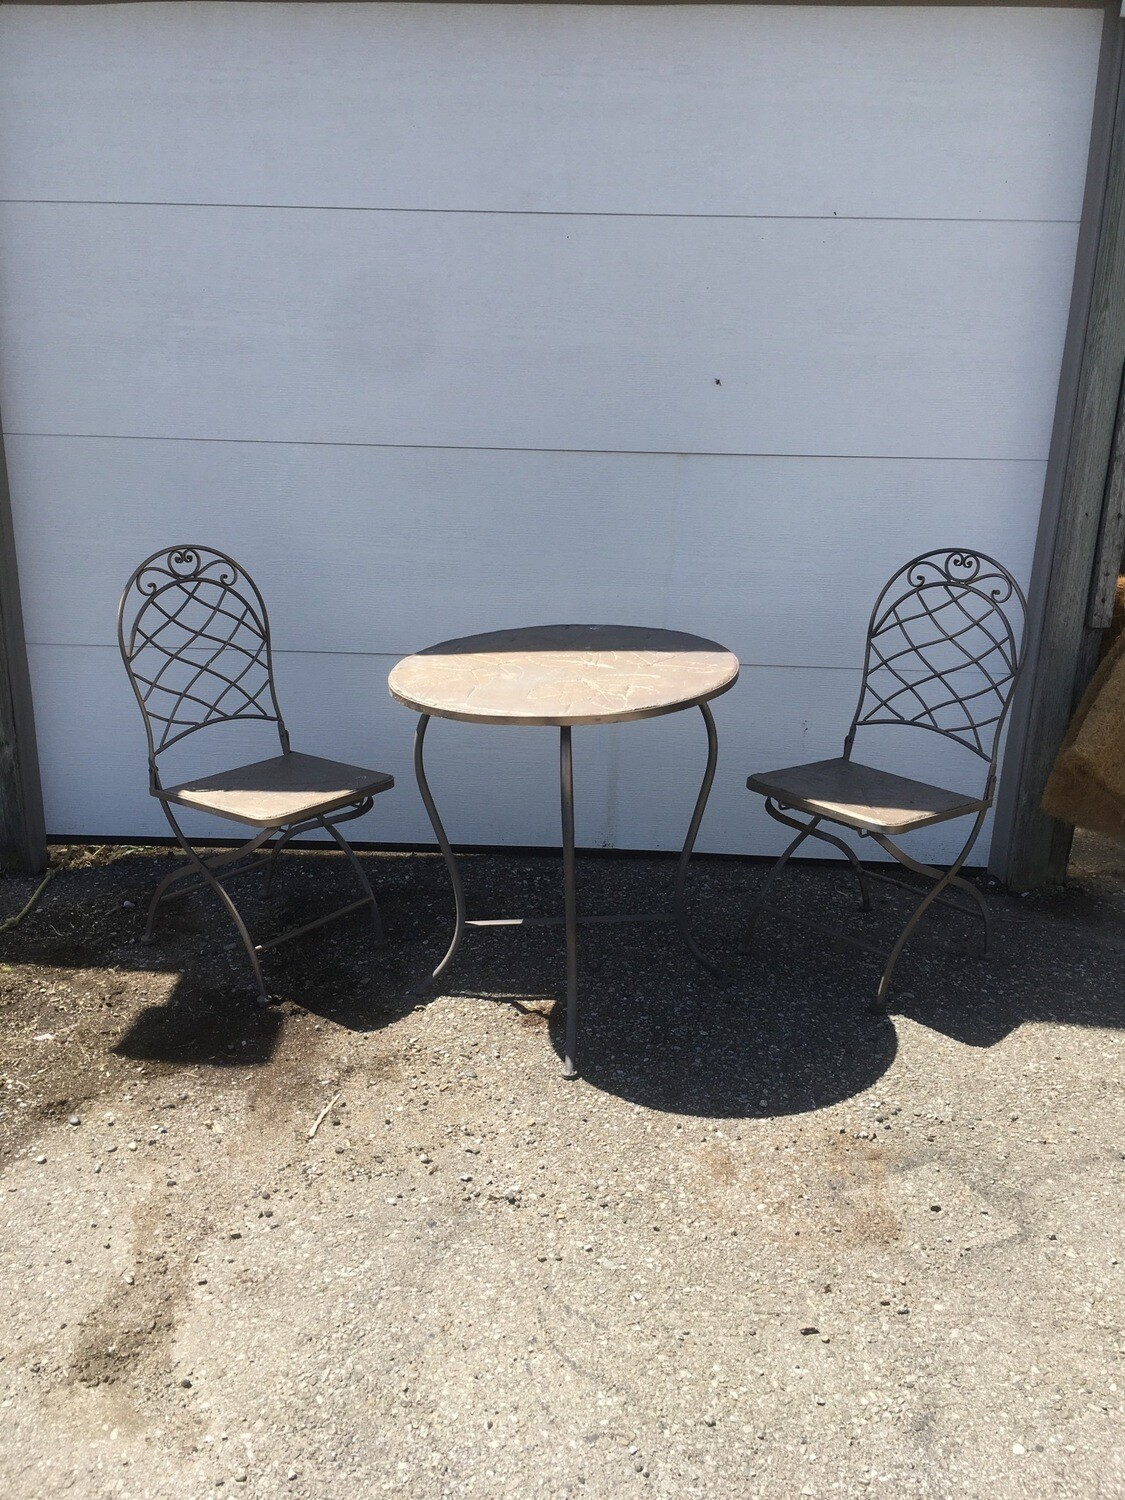 Bristro Chair And Table Set - As Is